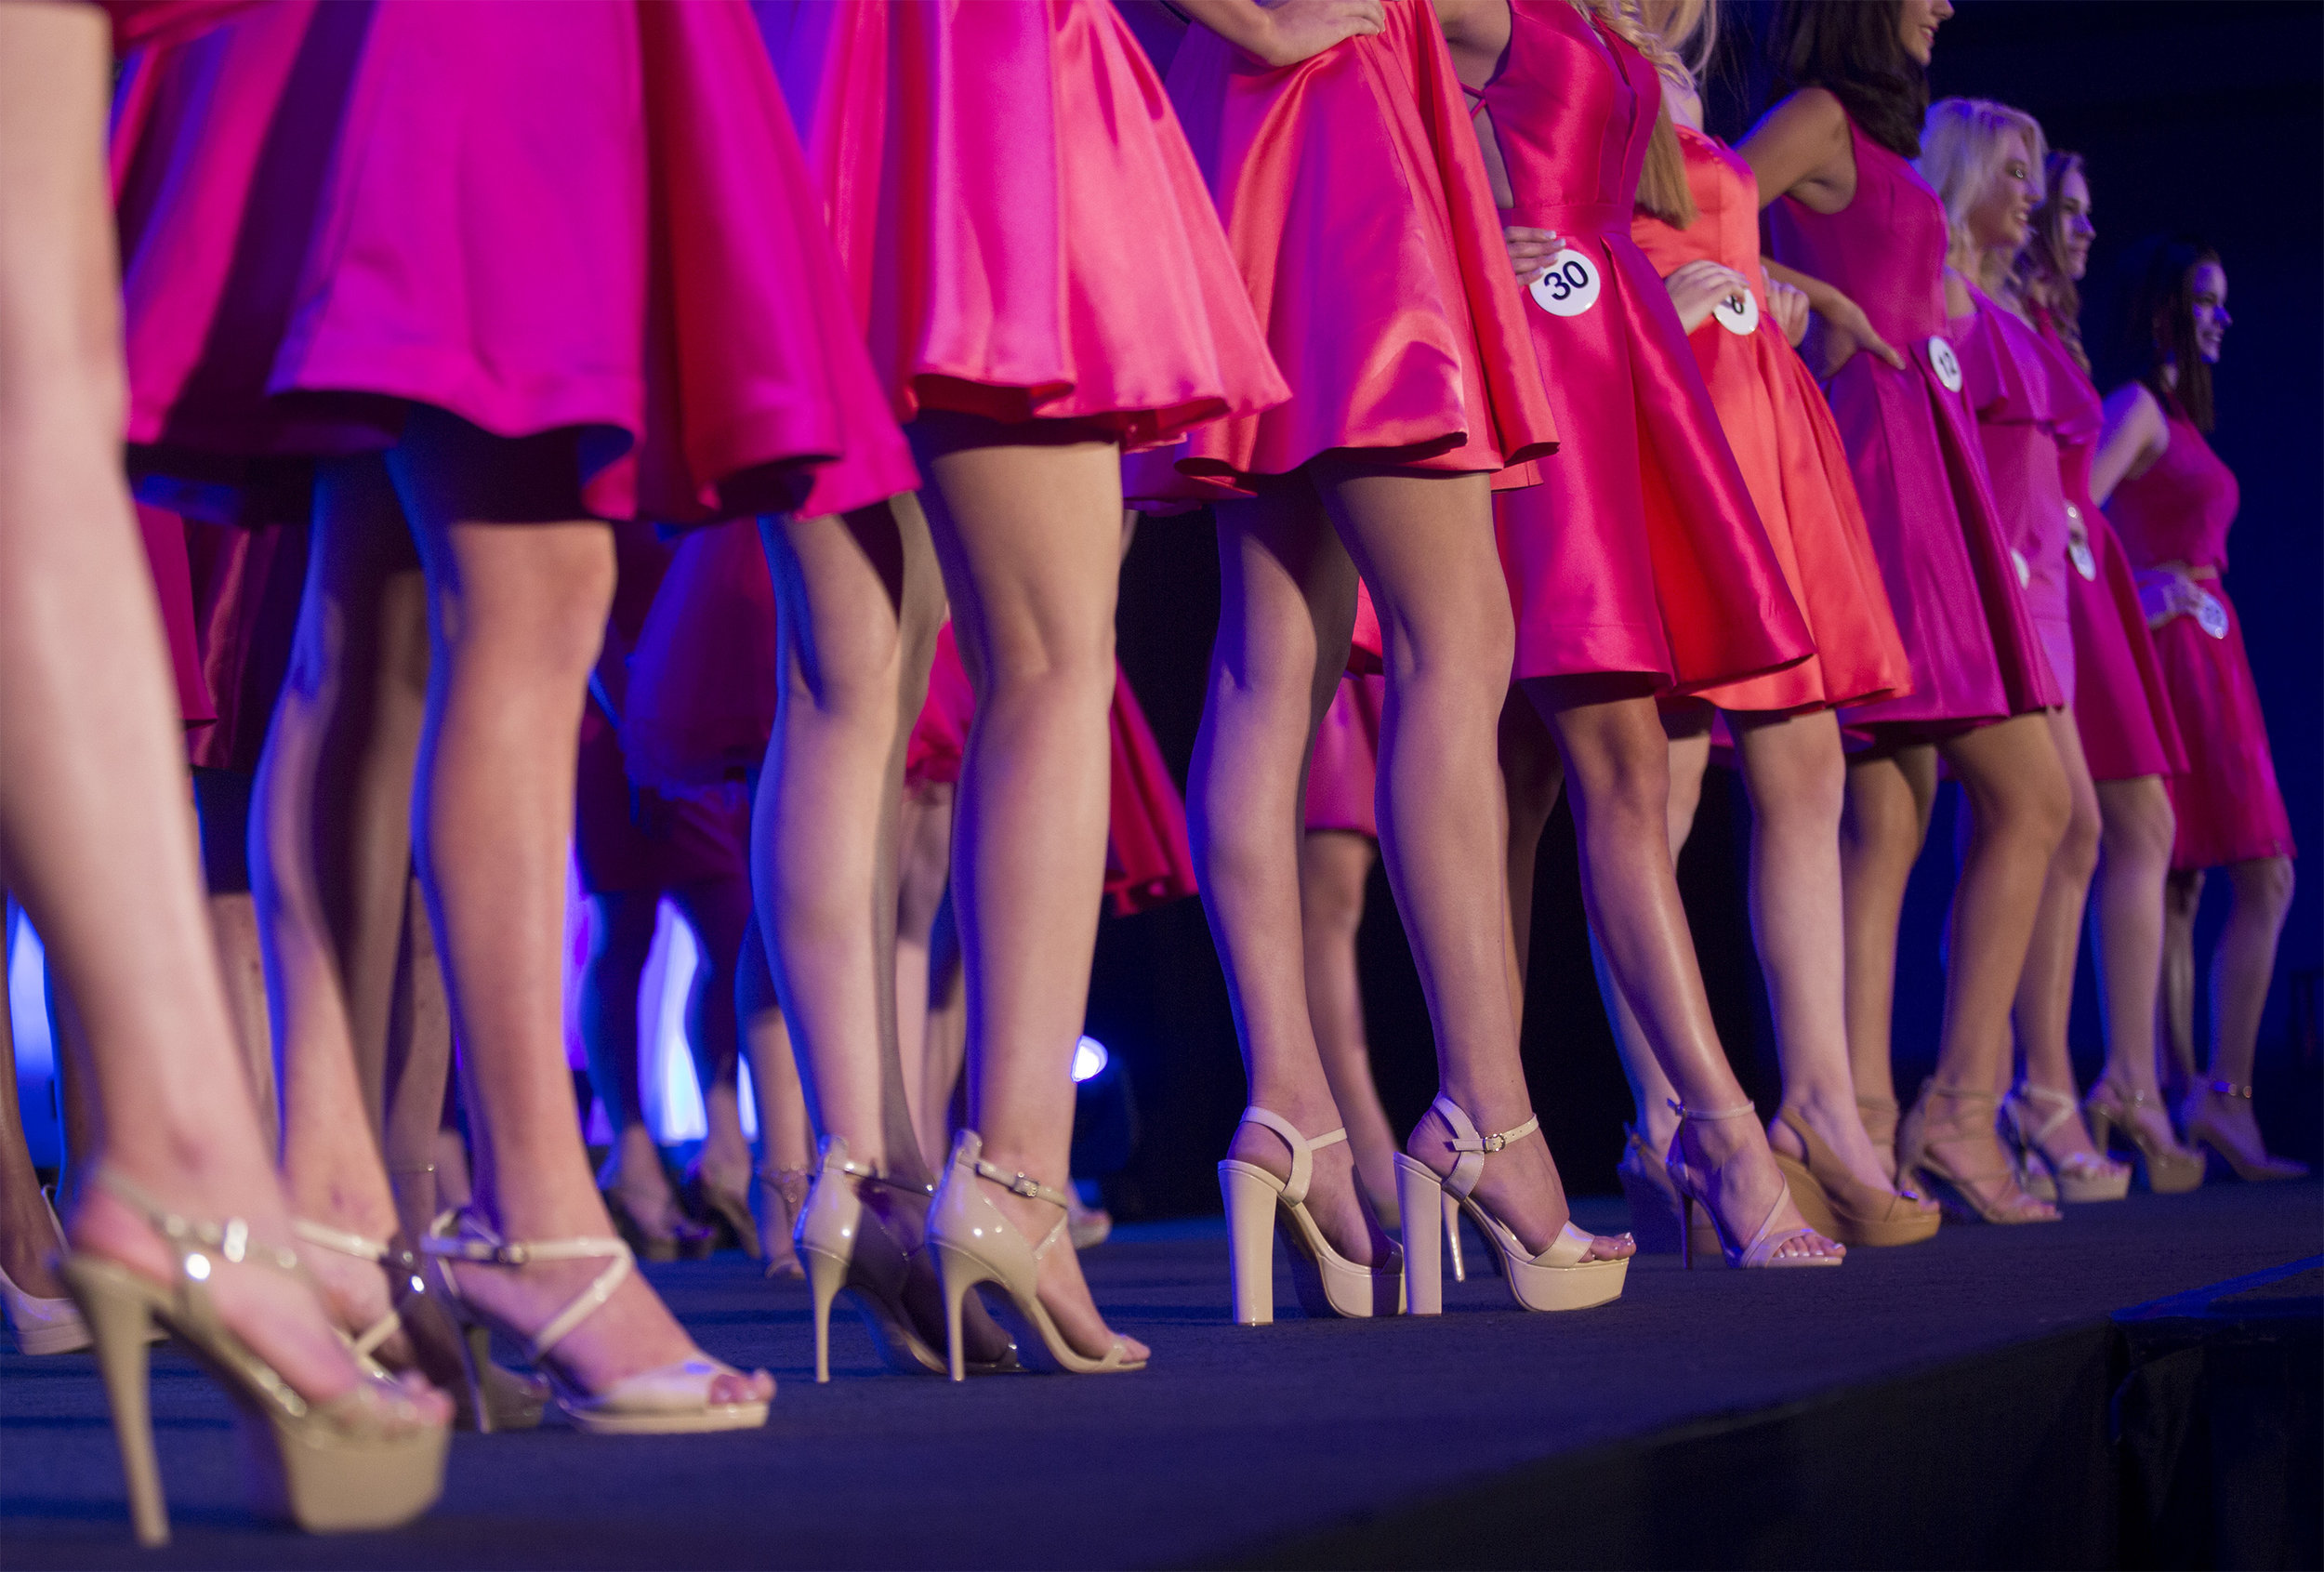 Miss Maine Teen USA contestants lined up on stage during judging.